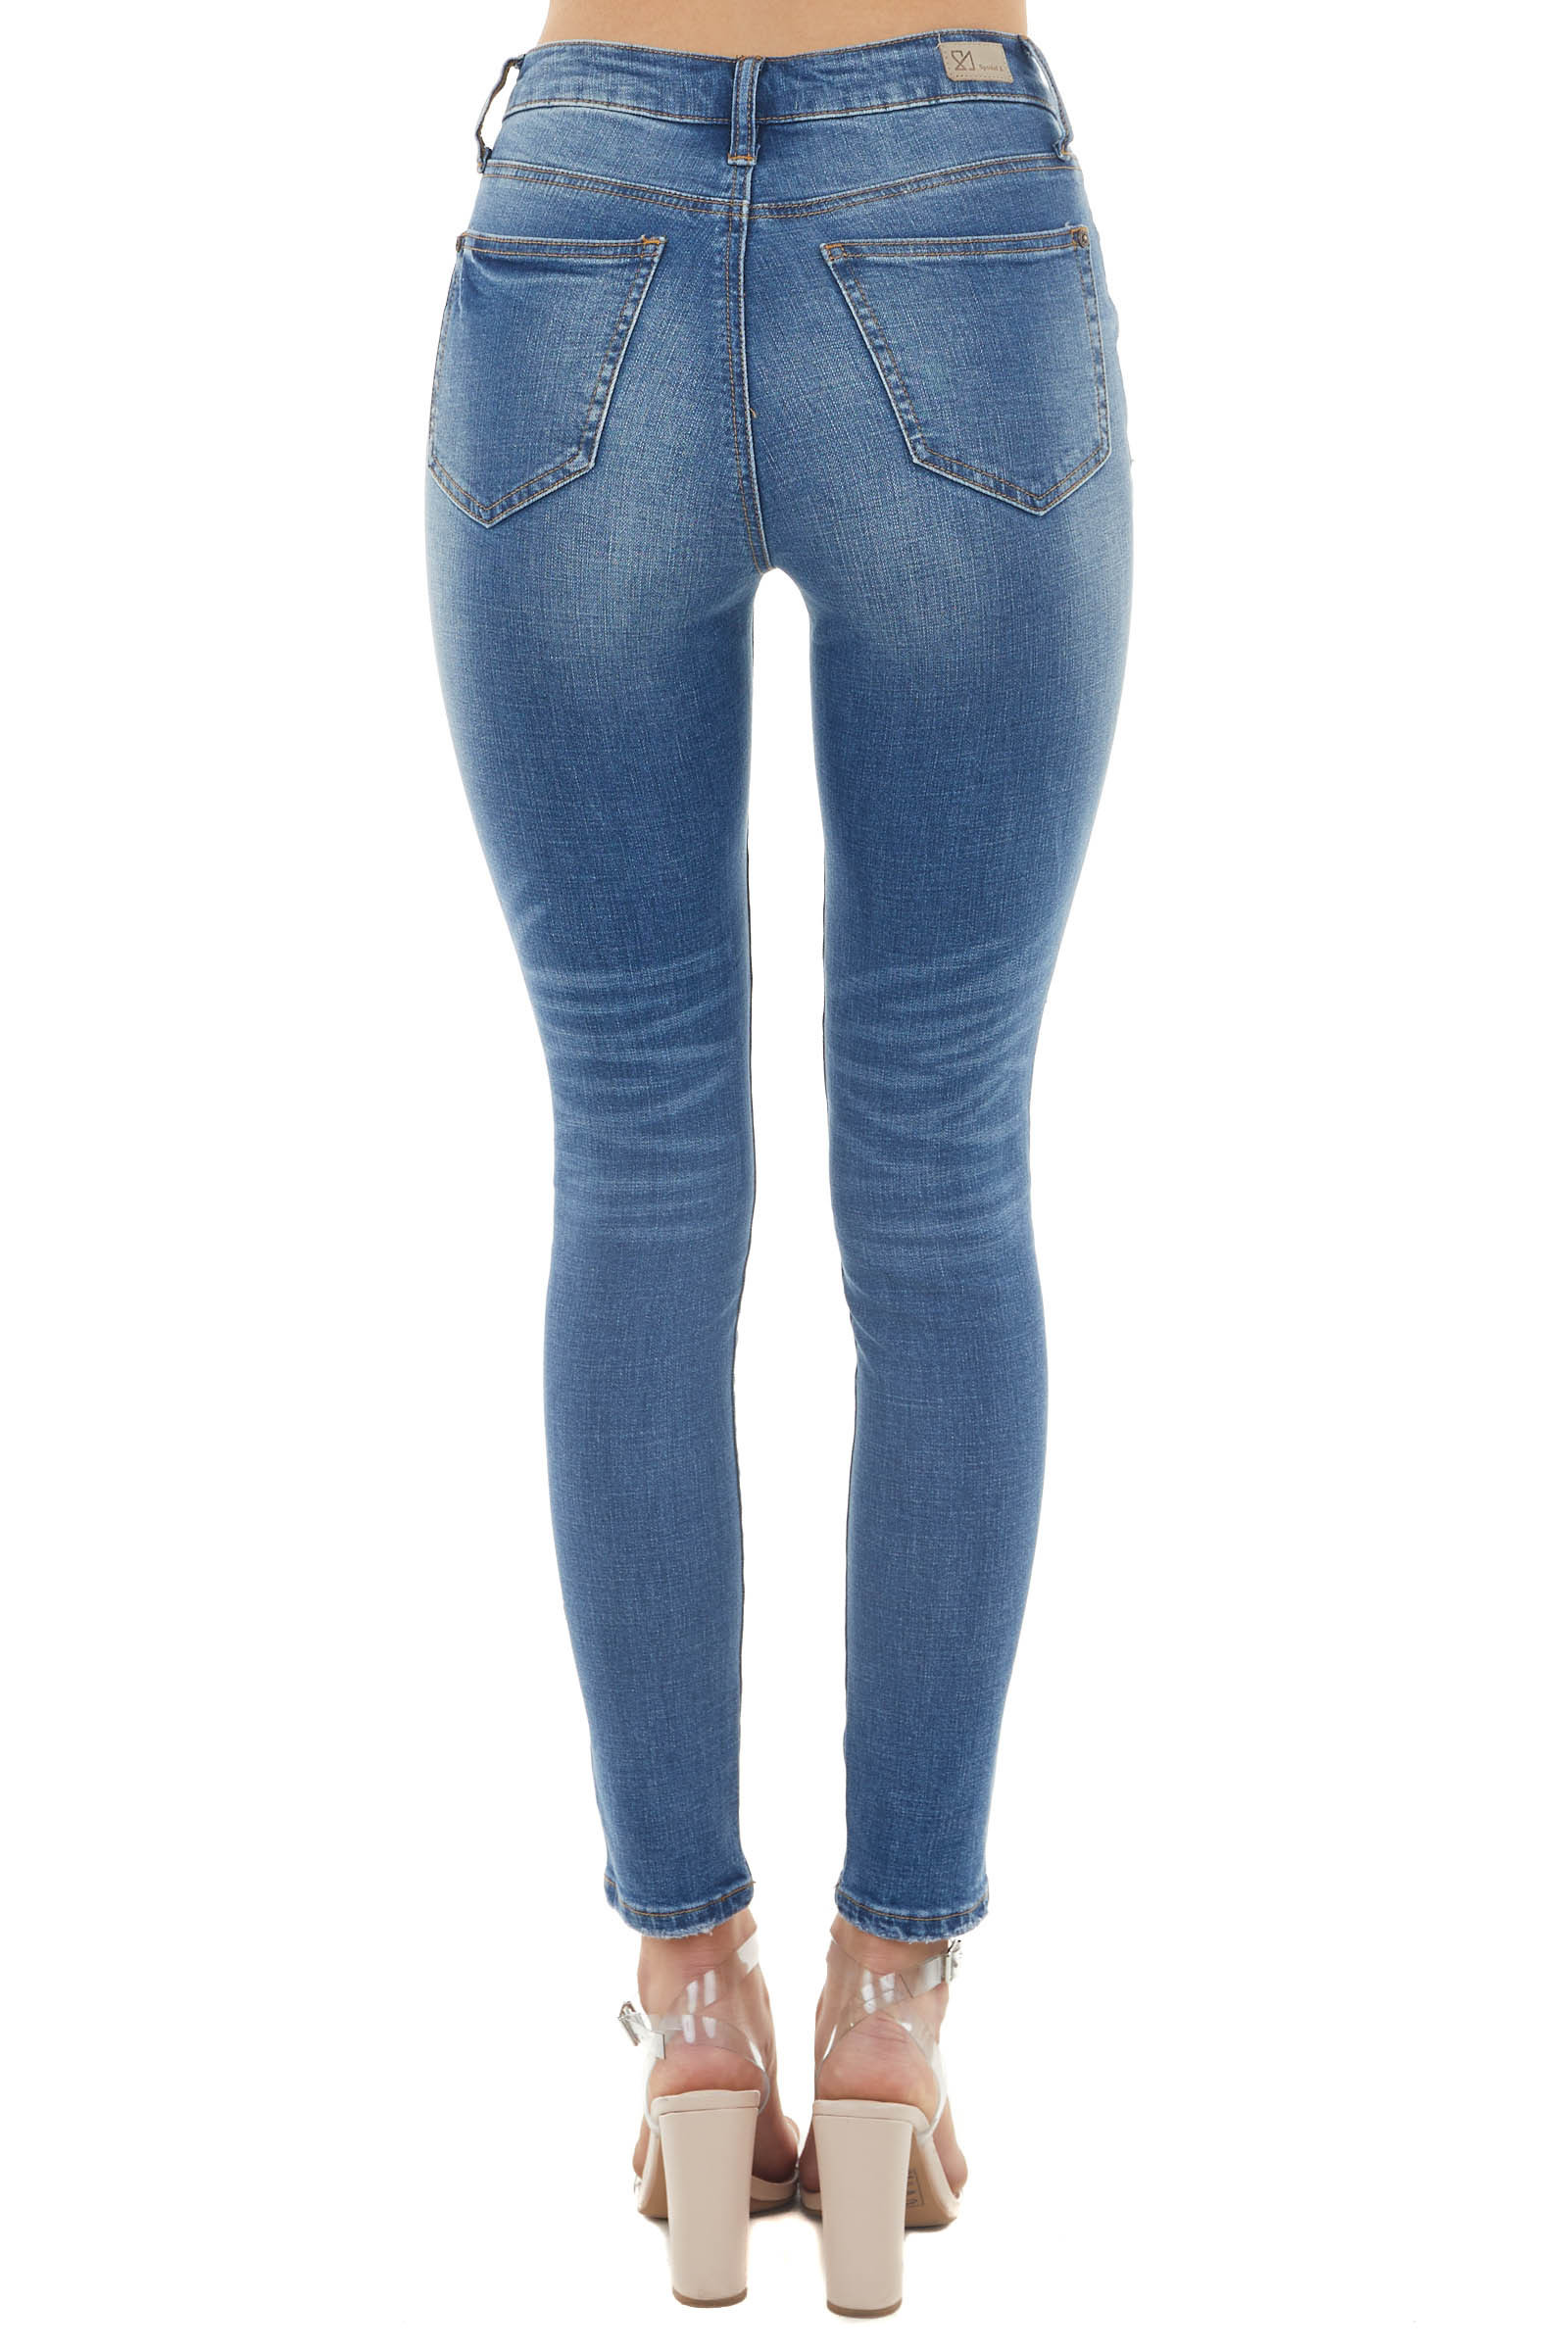 Medium Dark Wash High Rise Button Fly Skinny Jeans